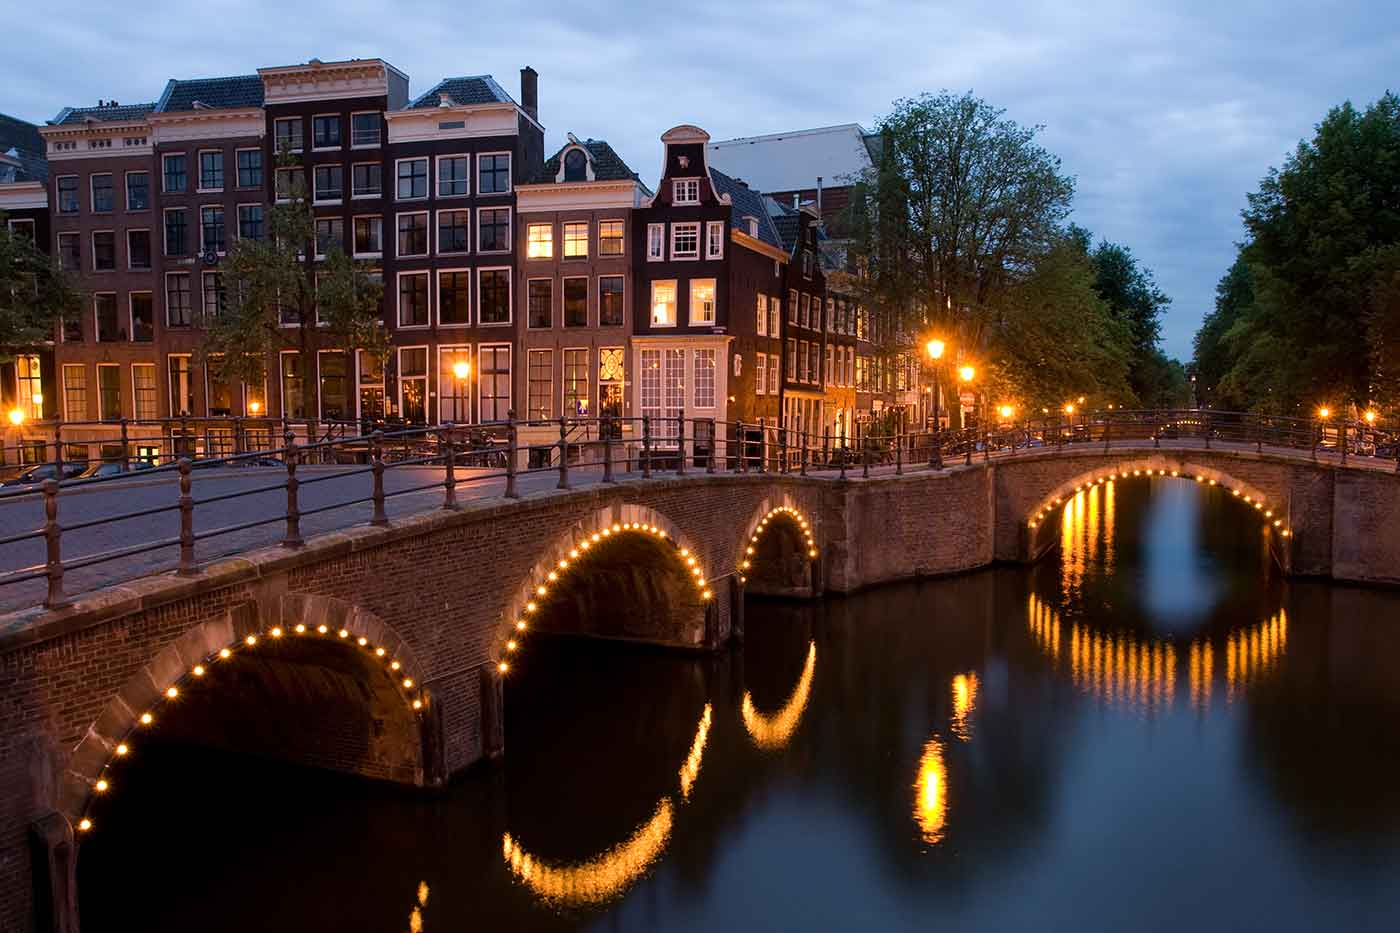 A view of the Reguliersgracht on the corner with the Keizersgracht, in Amsterdam, the Netherlands at dusk.